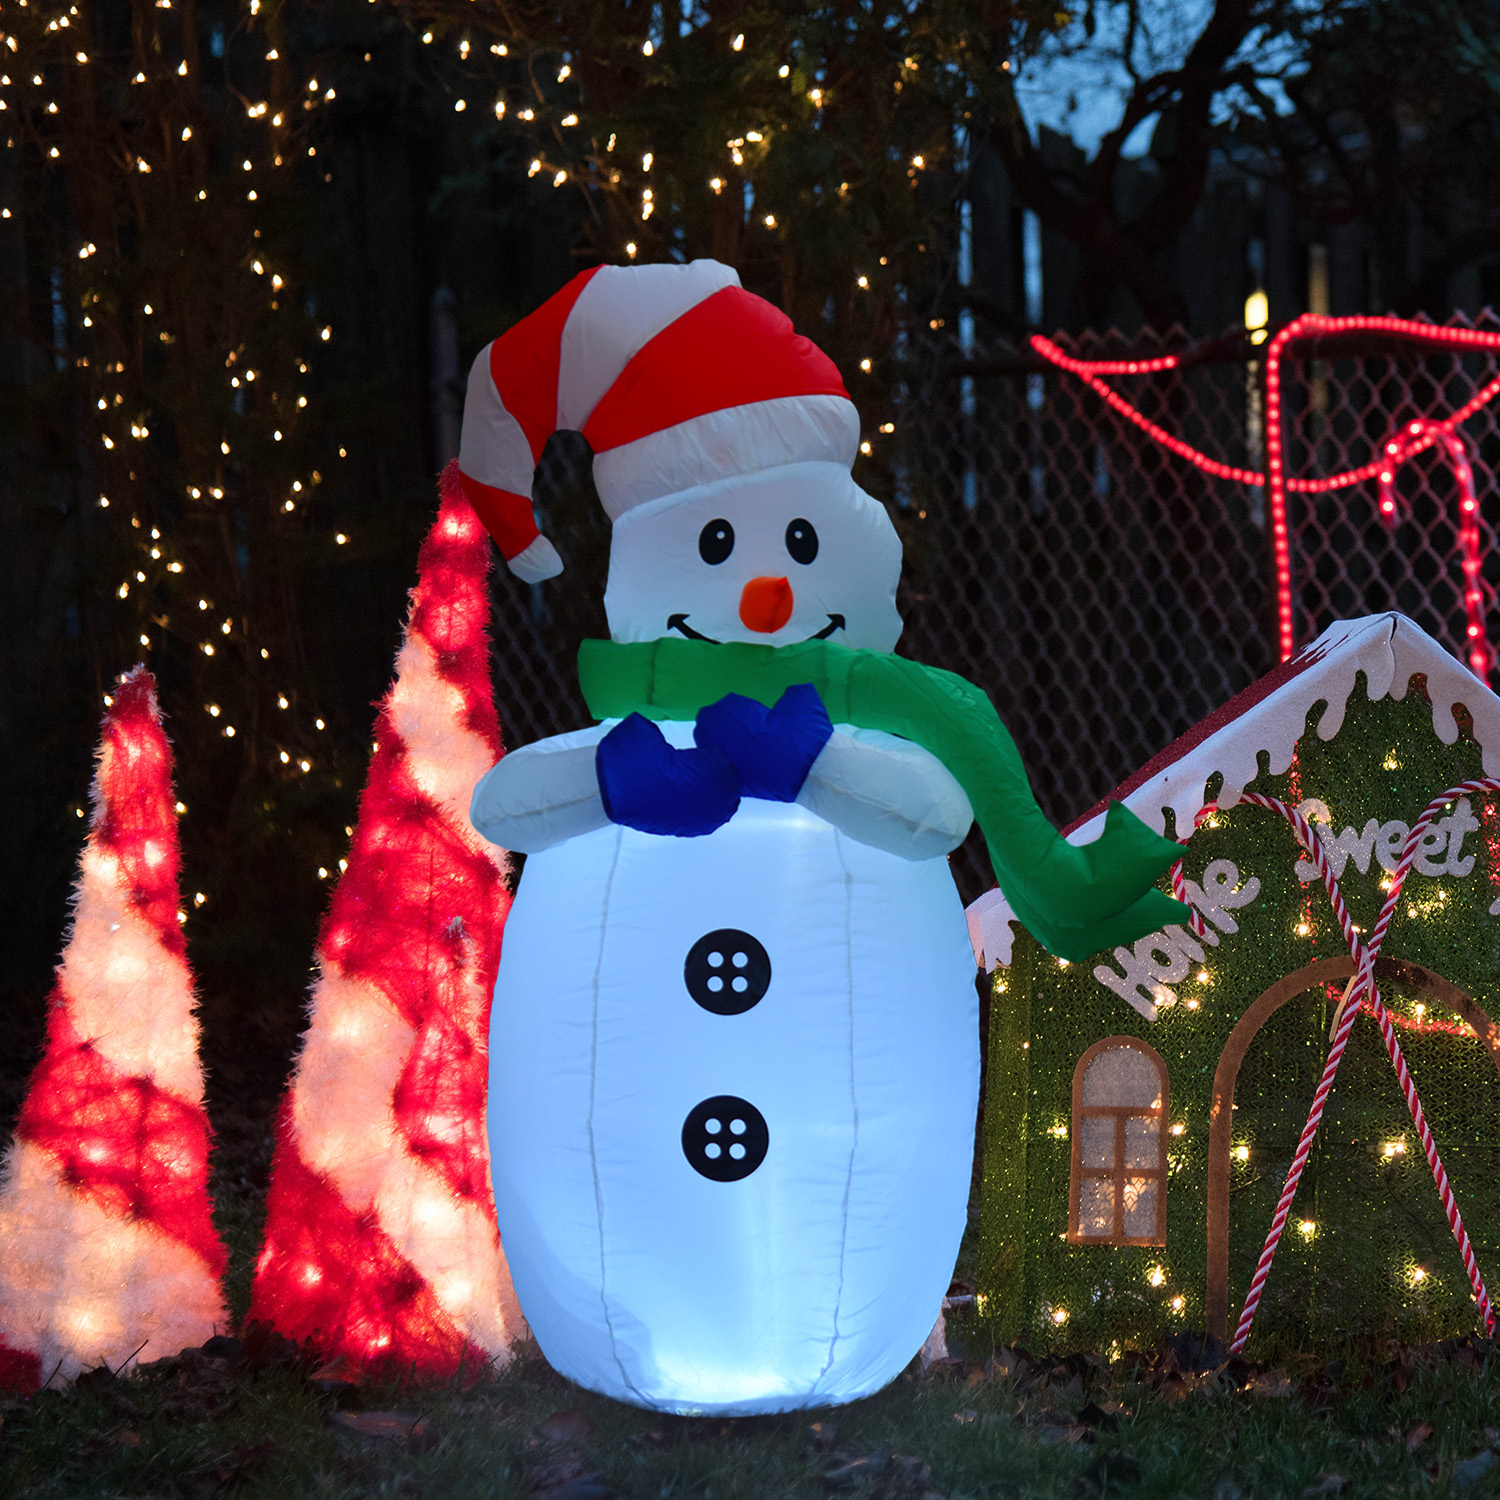 Image of £22.99 HOMCOM Inflatable Christmas Snowman 120 cm W/LED Lights / Standing Decoration Large Waterproof 120cm Tall with LED and Inflator LEDs for Outdoor Decor 844-113 5056029896457